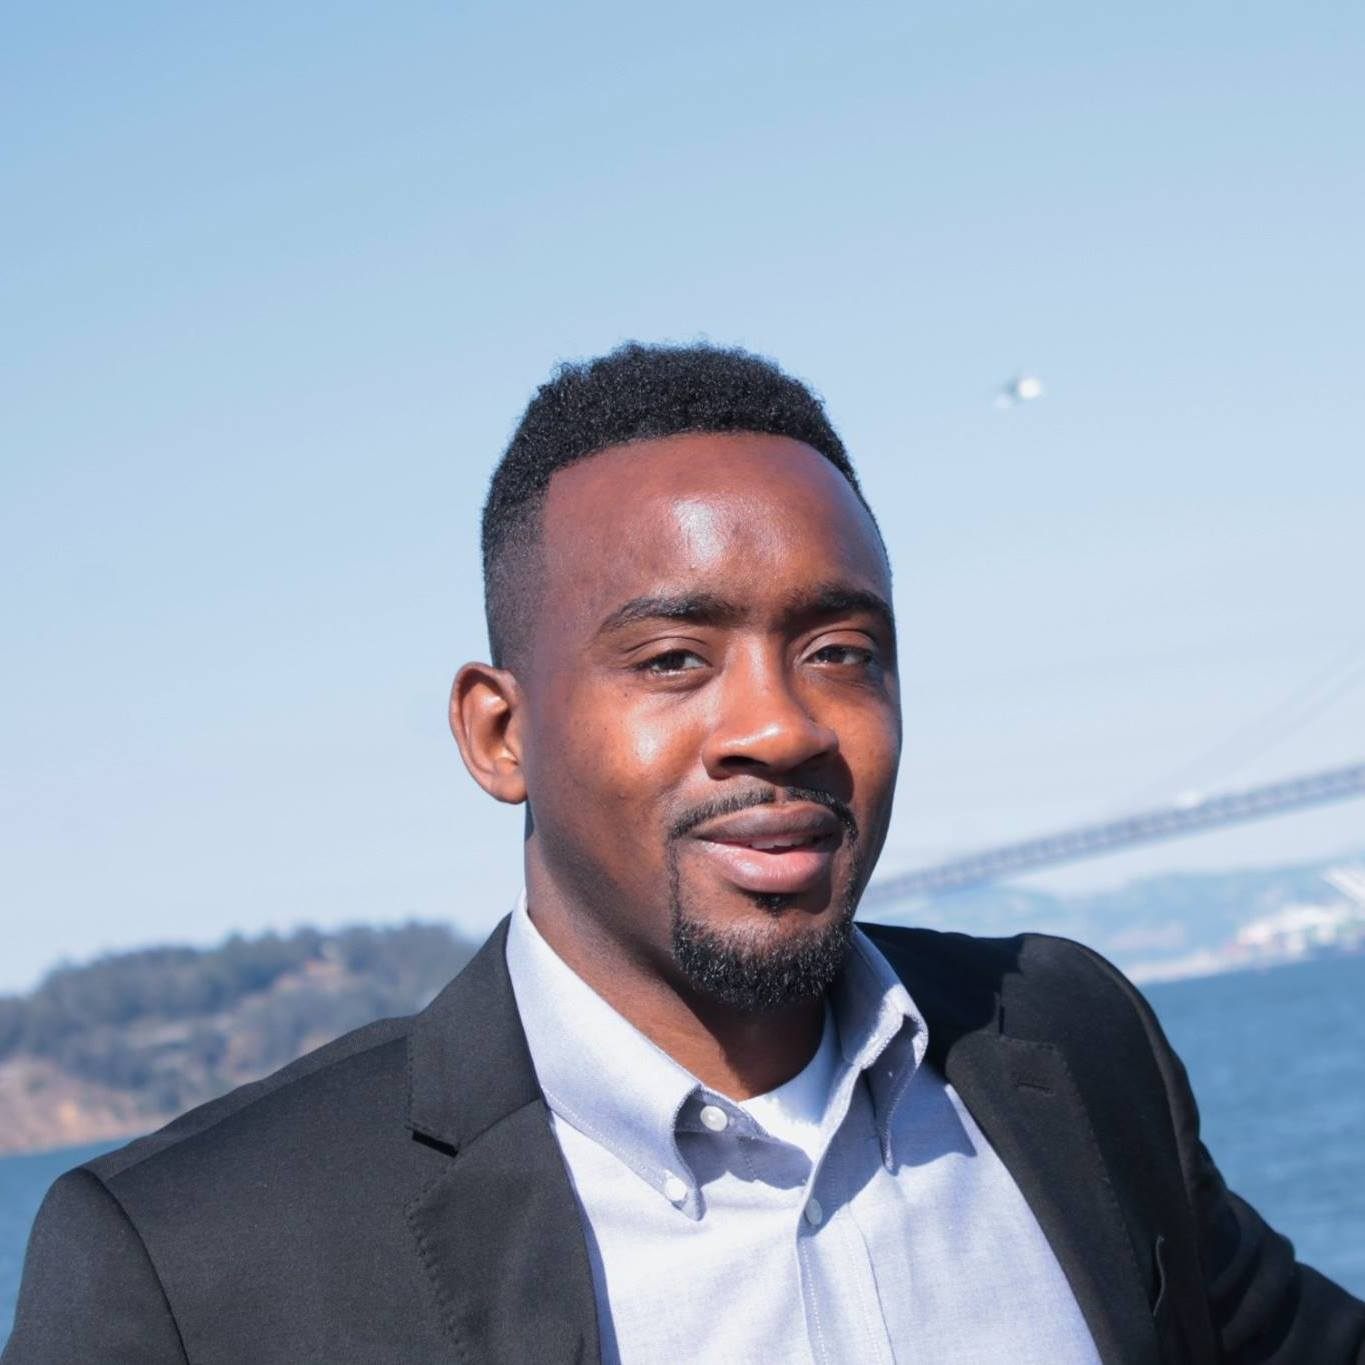 Speaker Added: Corey Harris Growth Manager Dispatch.io